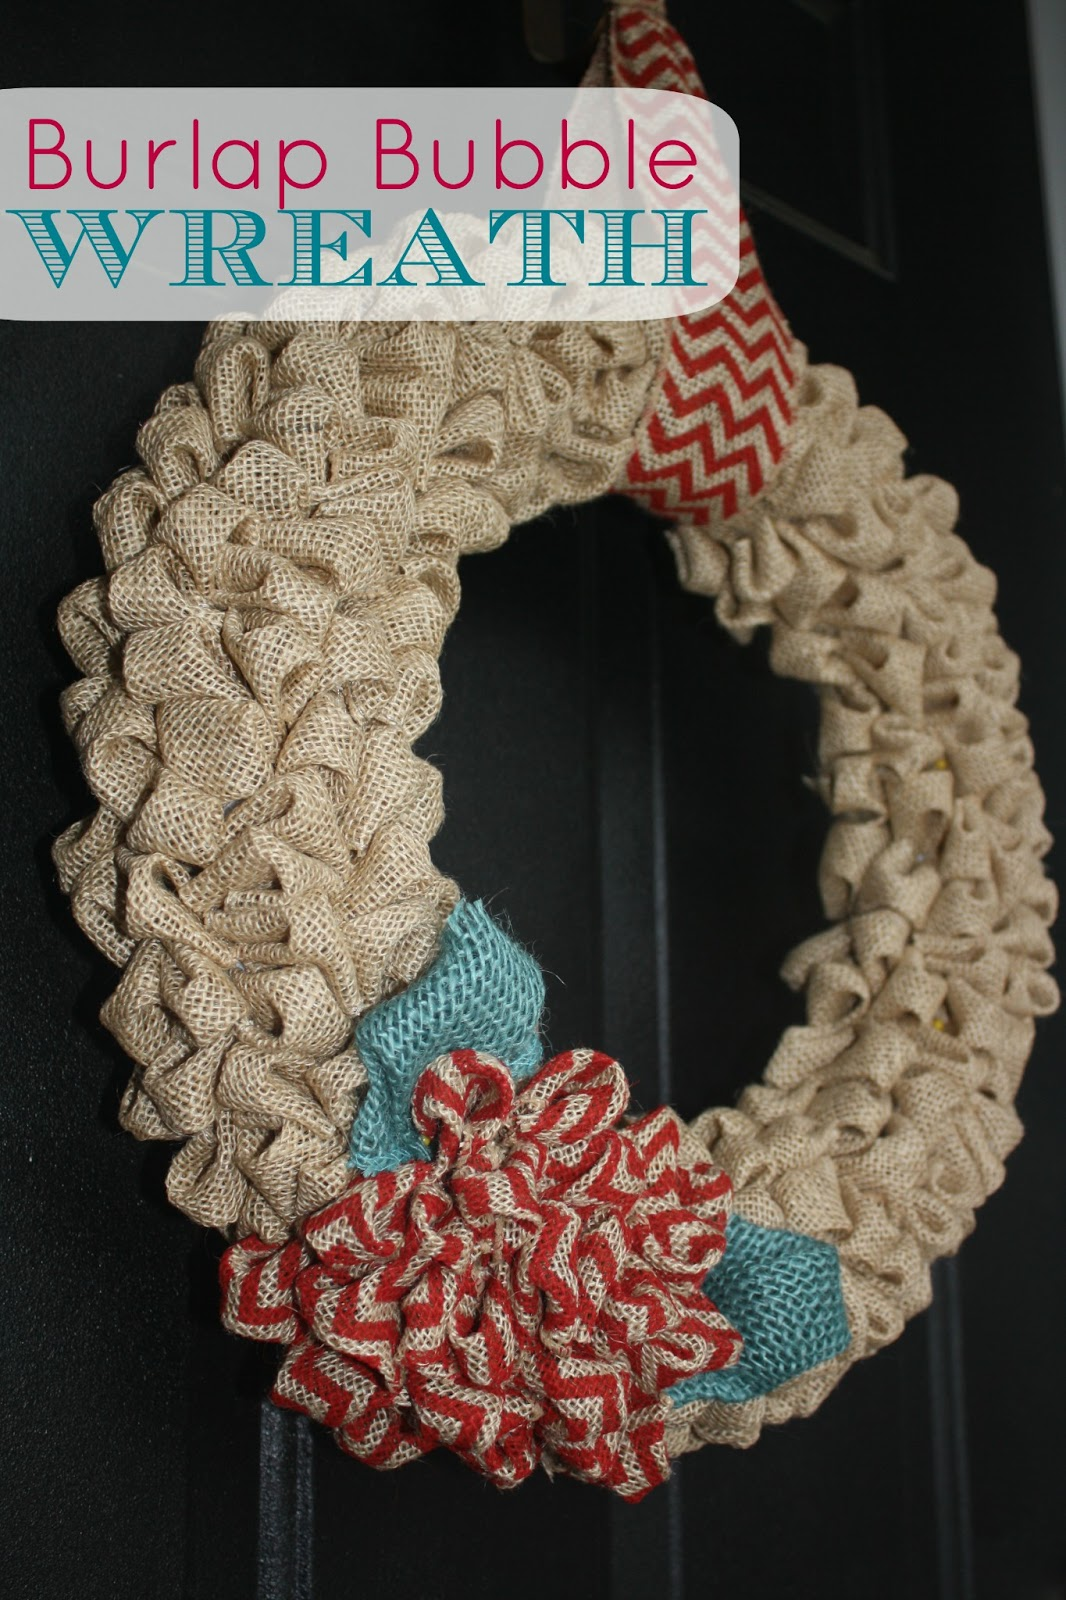 Image via: Etsy – Dog Lovers Burlap Wreath – Loves House of Burlap. Making Animal Crafts for Dog Lovers and Cat Lovers. To add an animal theme to the burlap deco mesh wreath, create a big bow or attach several bows to make a bigger one with the pet themed ribbon and attach it to the bottom part of the wreath.